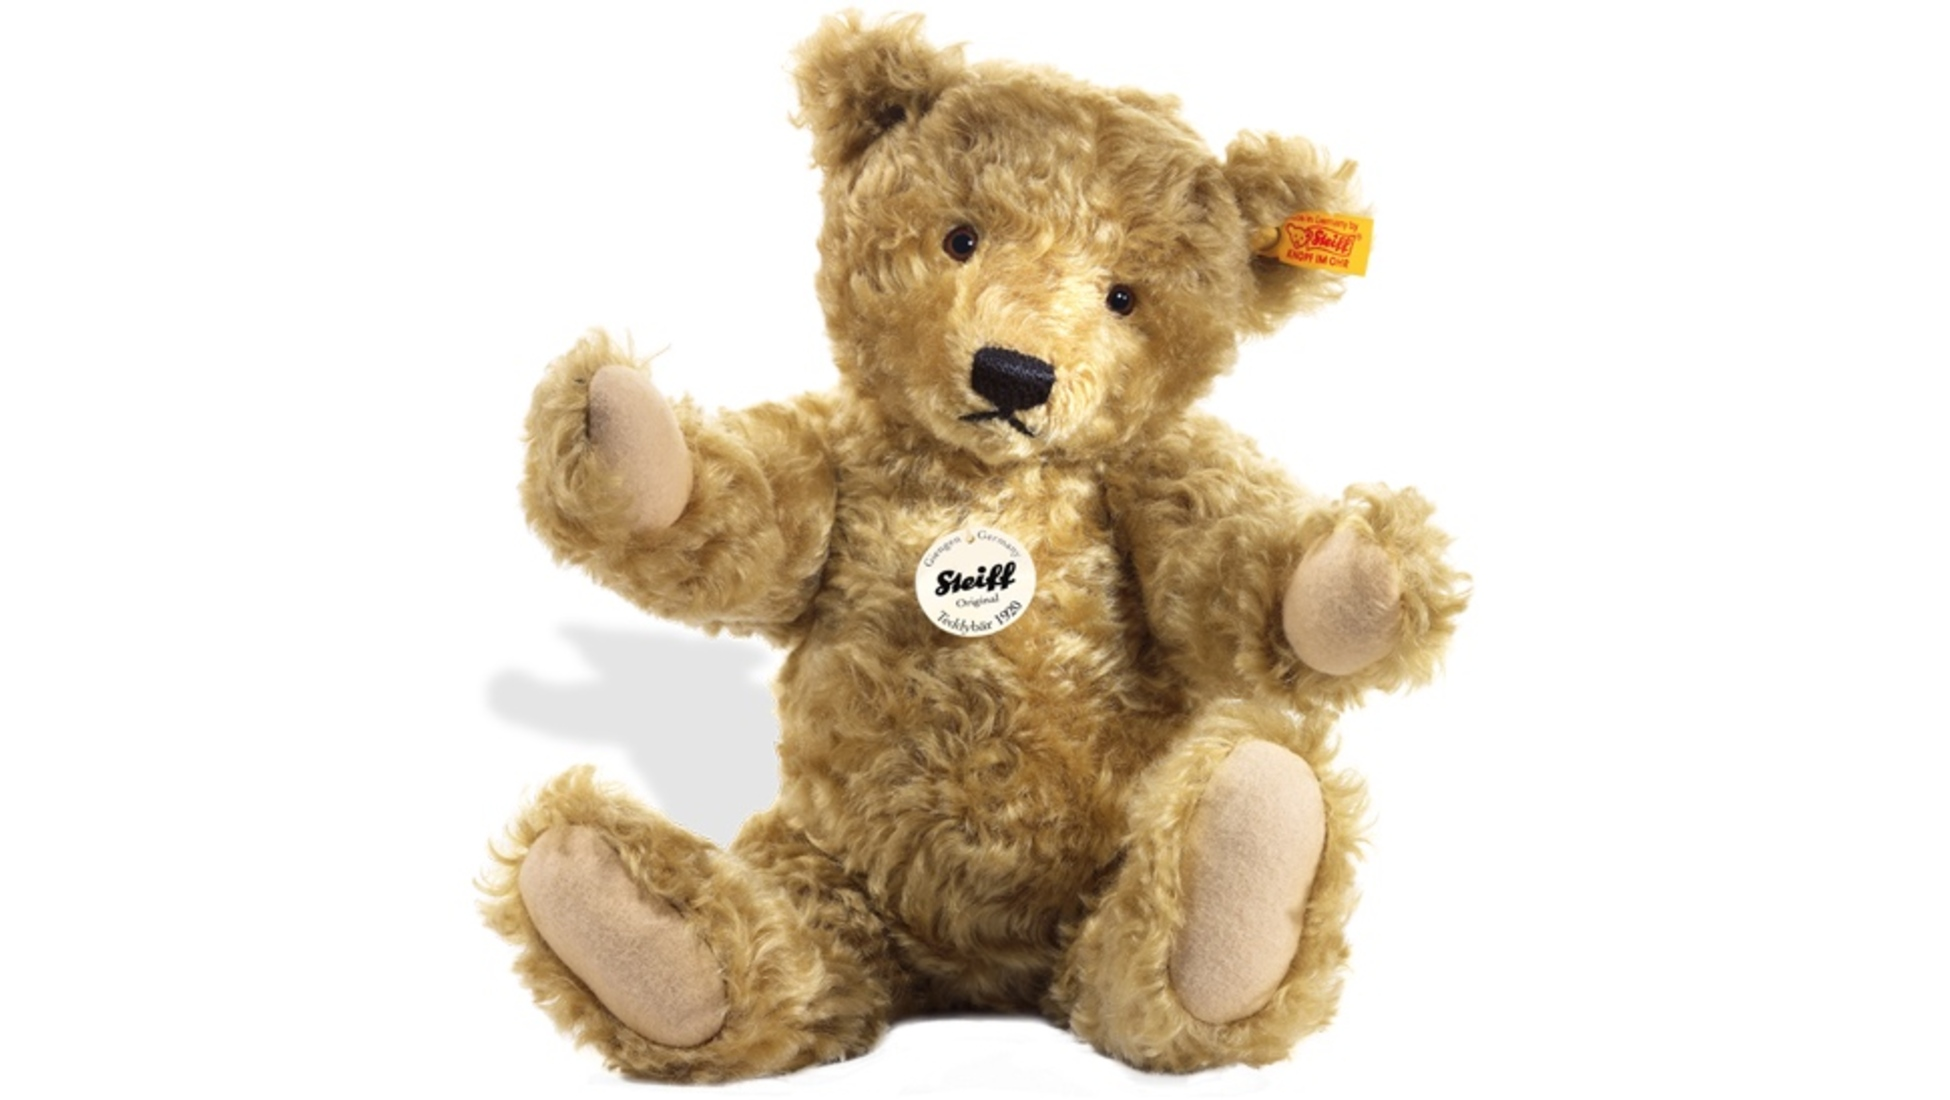 2cff1384b56 Steiff began making soft animal toys in Germany in the late 1800s. But it  was only when the company produced their now famous 'Teddy' bears in 1902  that ...